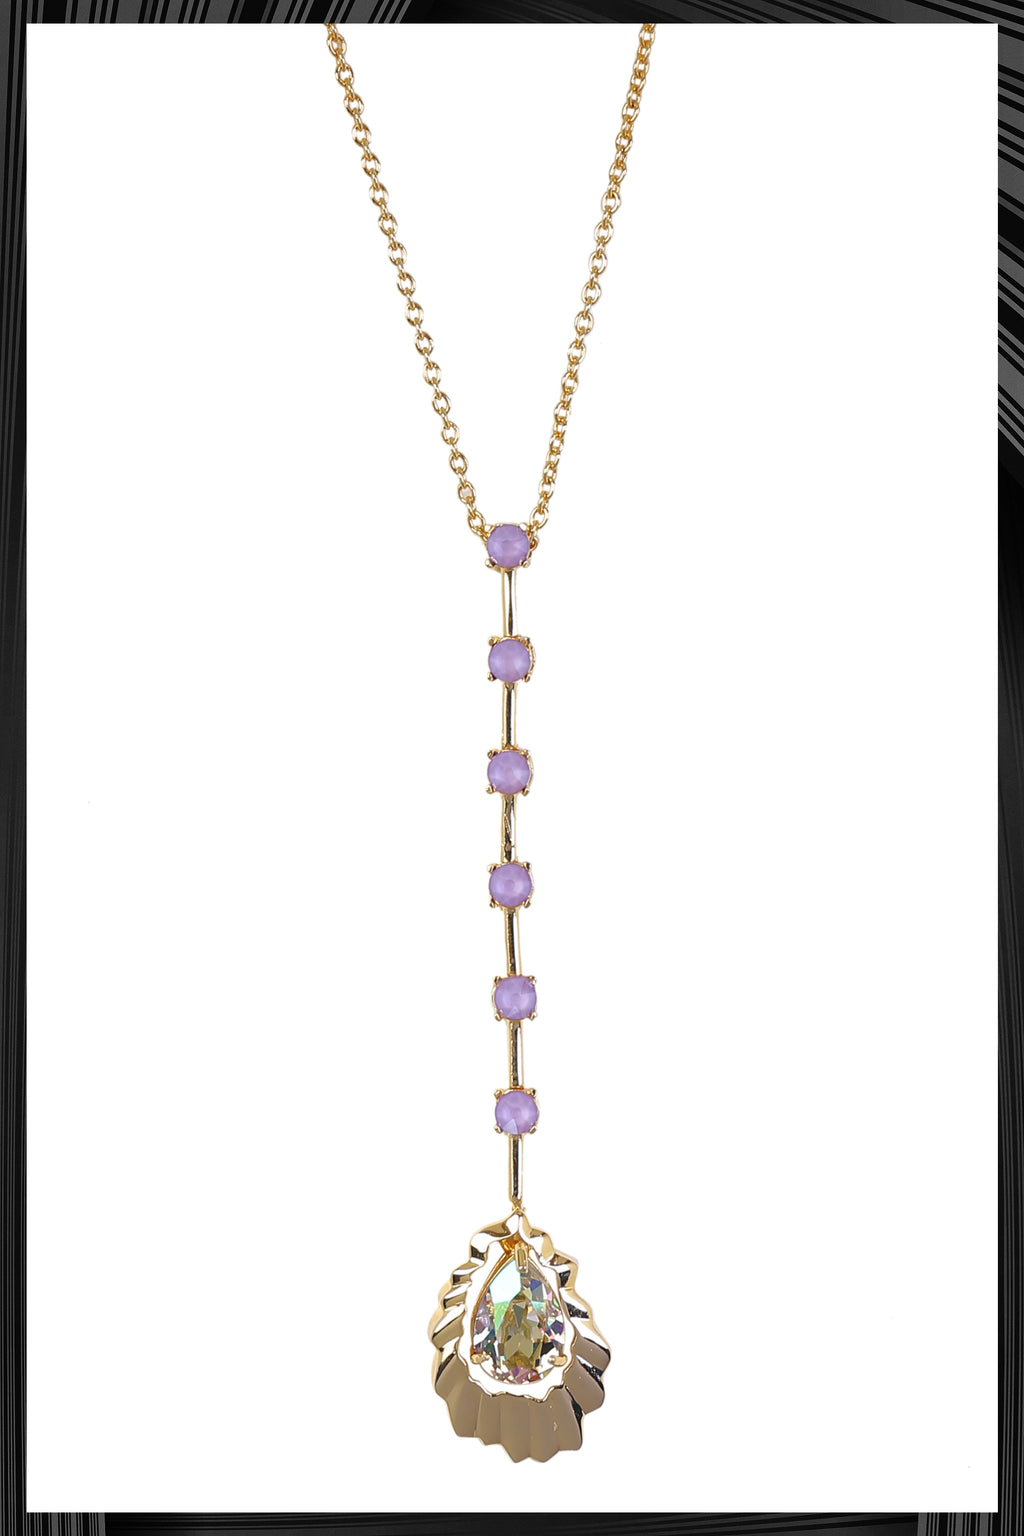 Lavender Rio Necklace